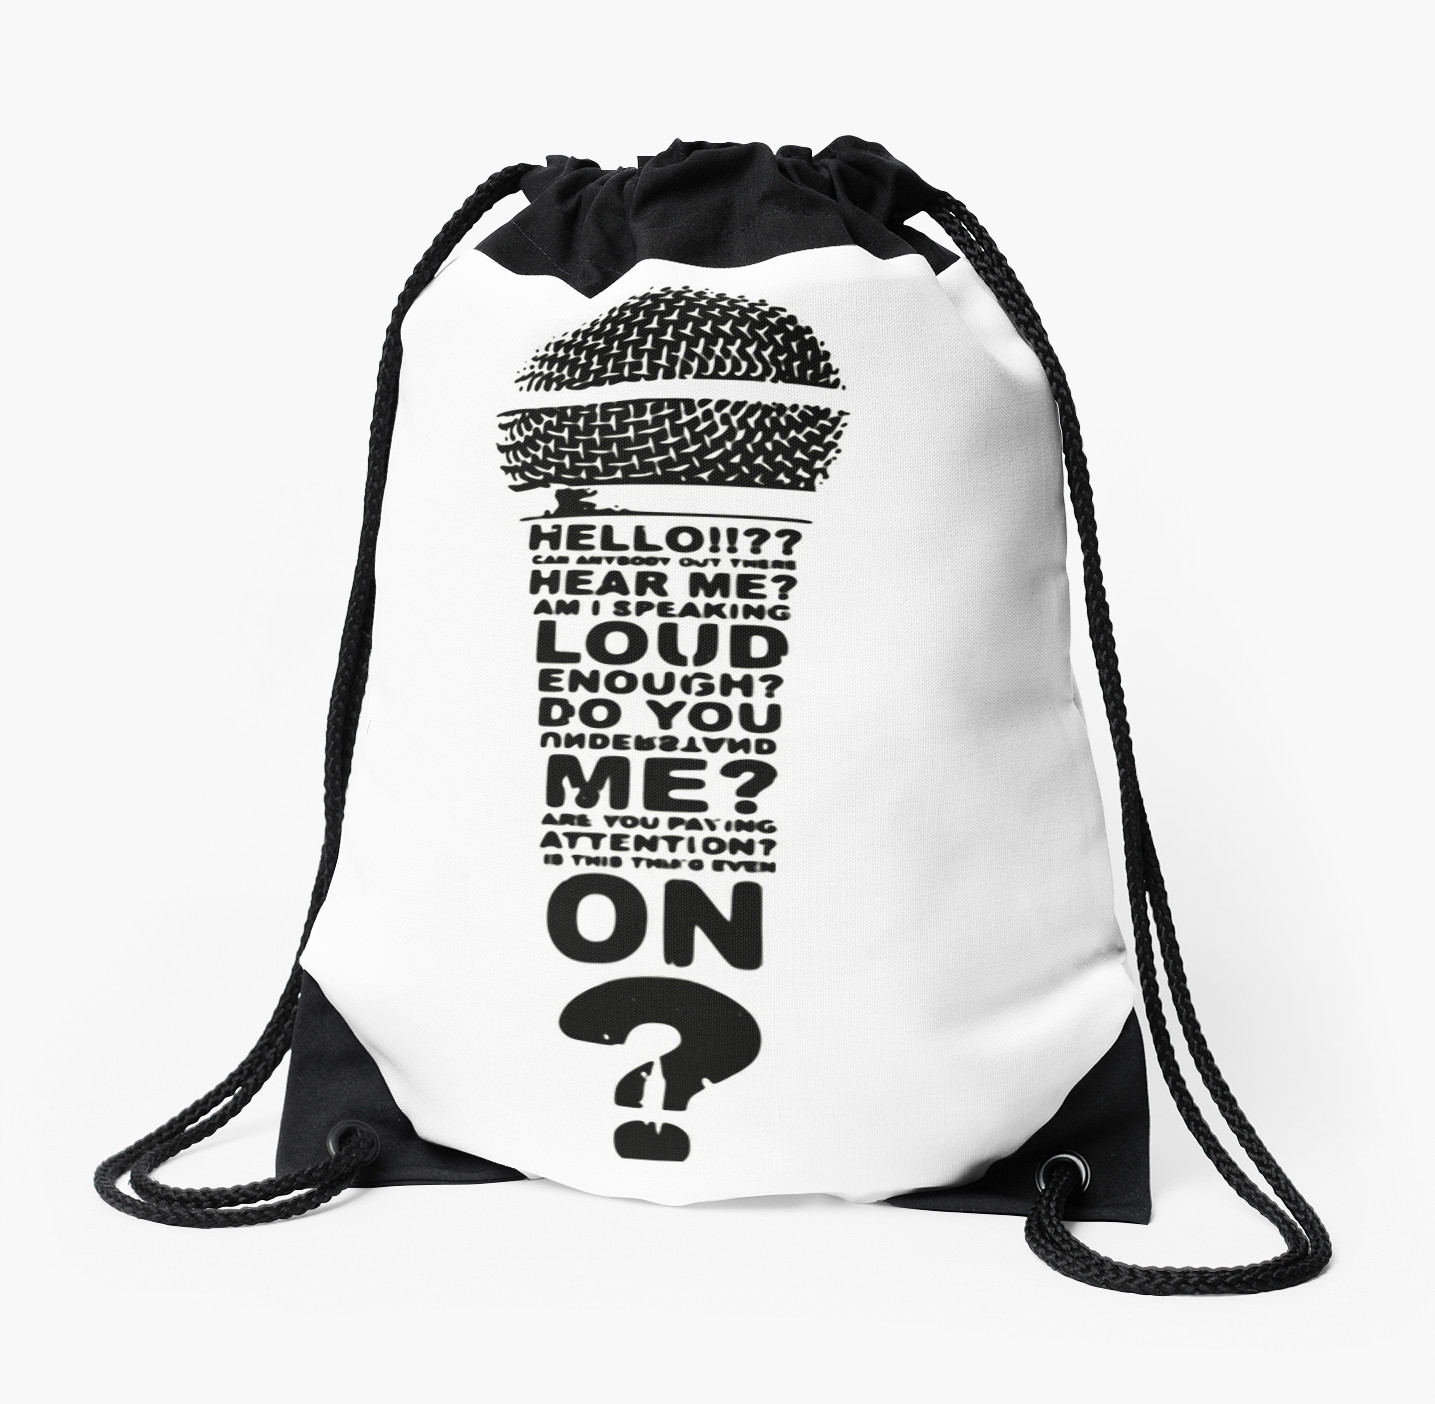 Is This Mic On? - Design